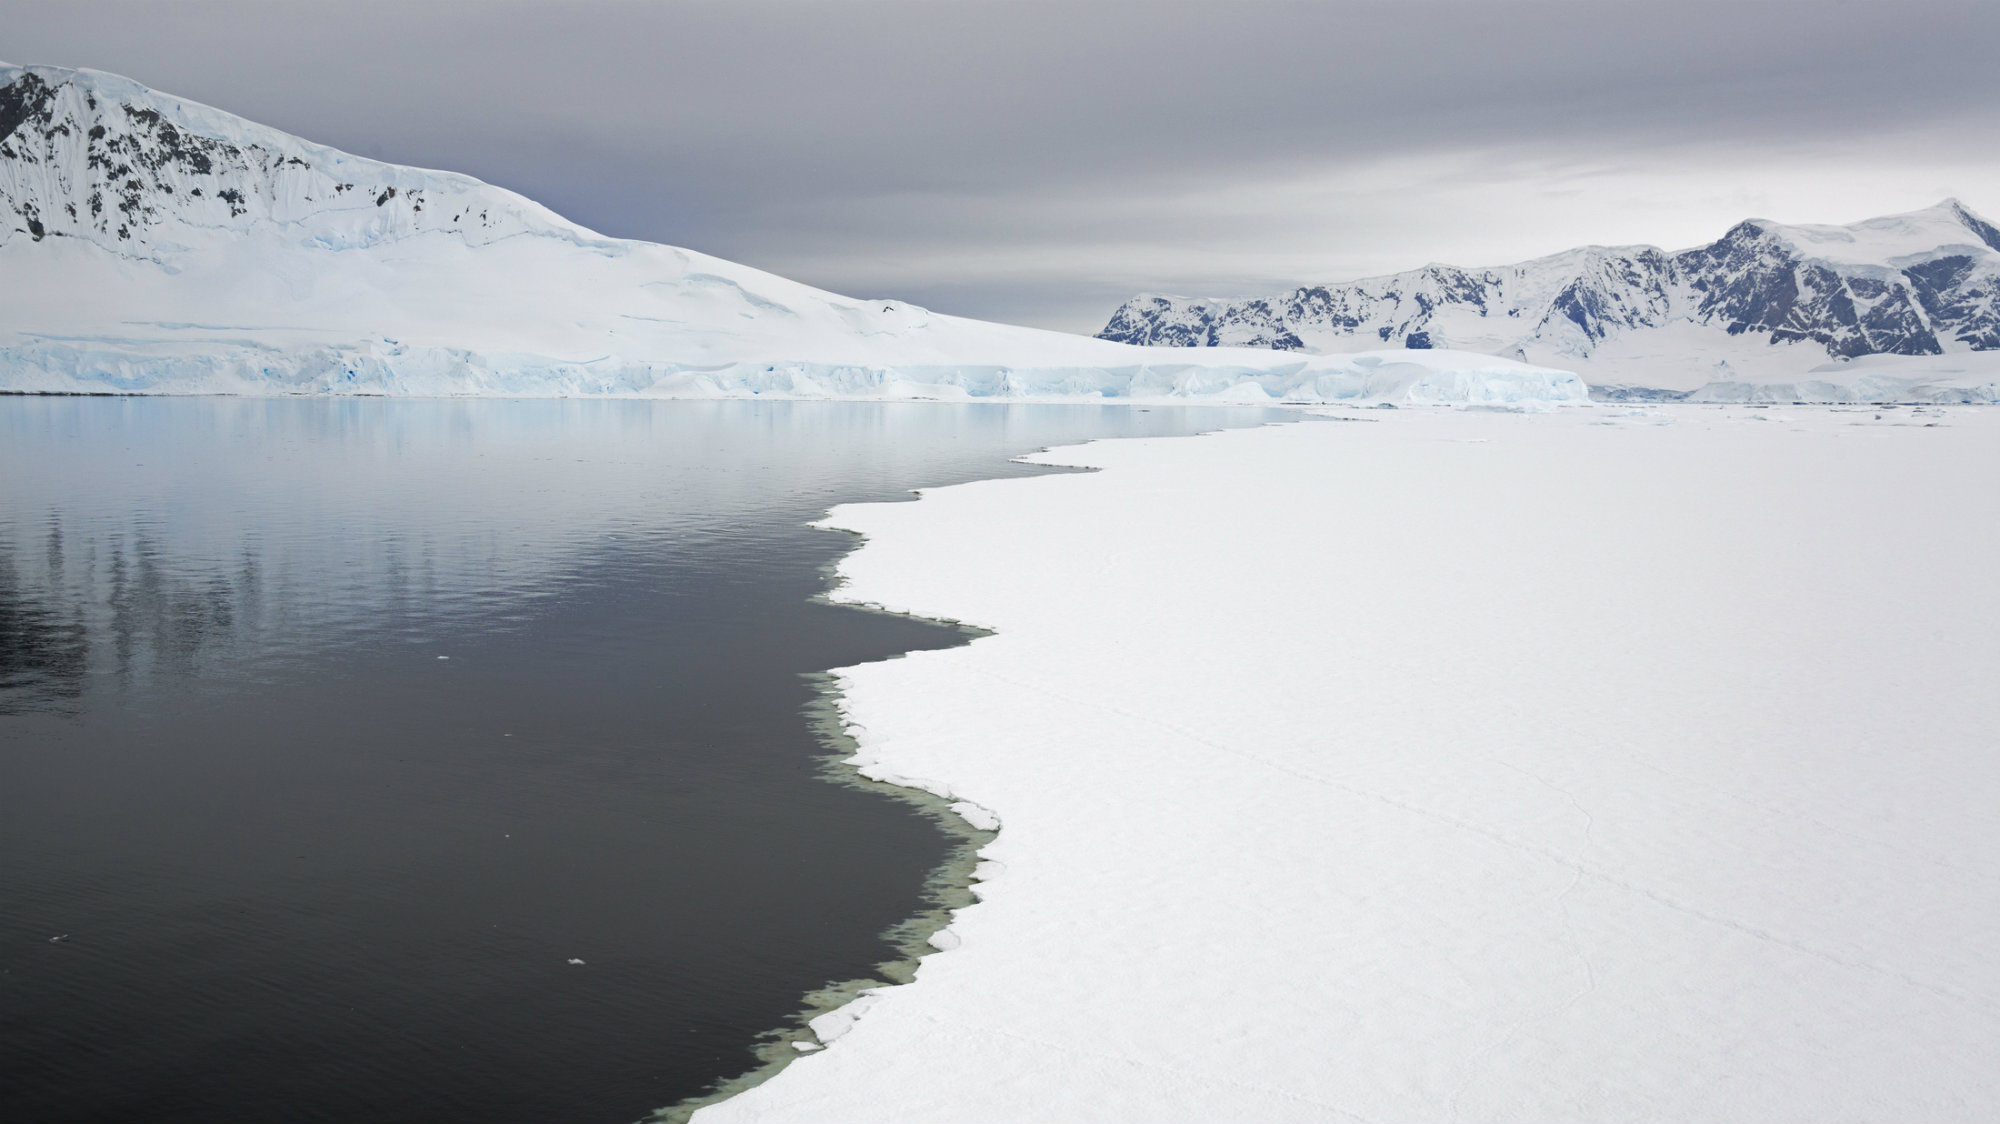 In 25 years, West Antarctica tripled its rate of ice loss